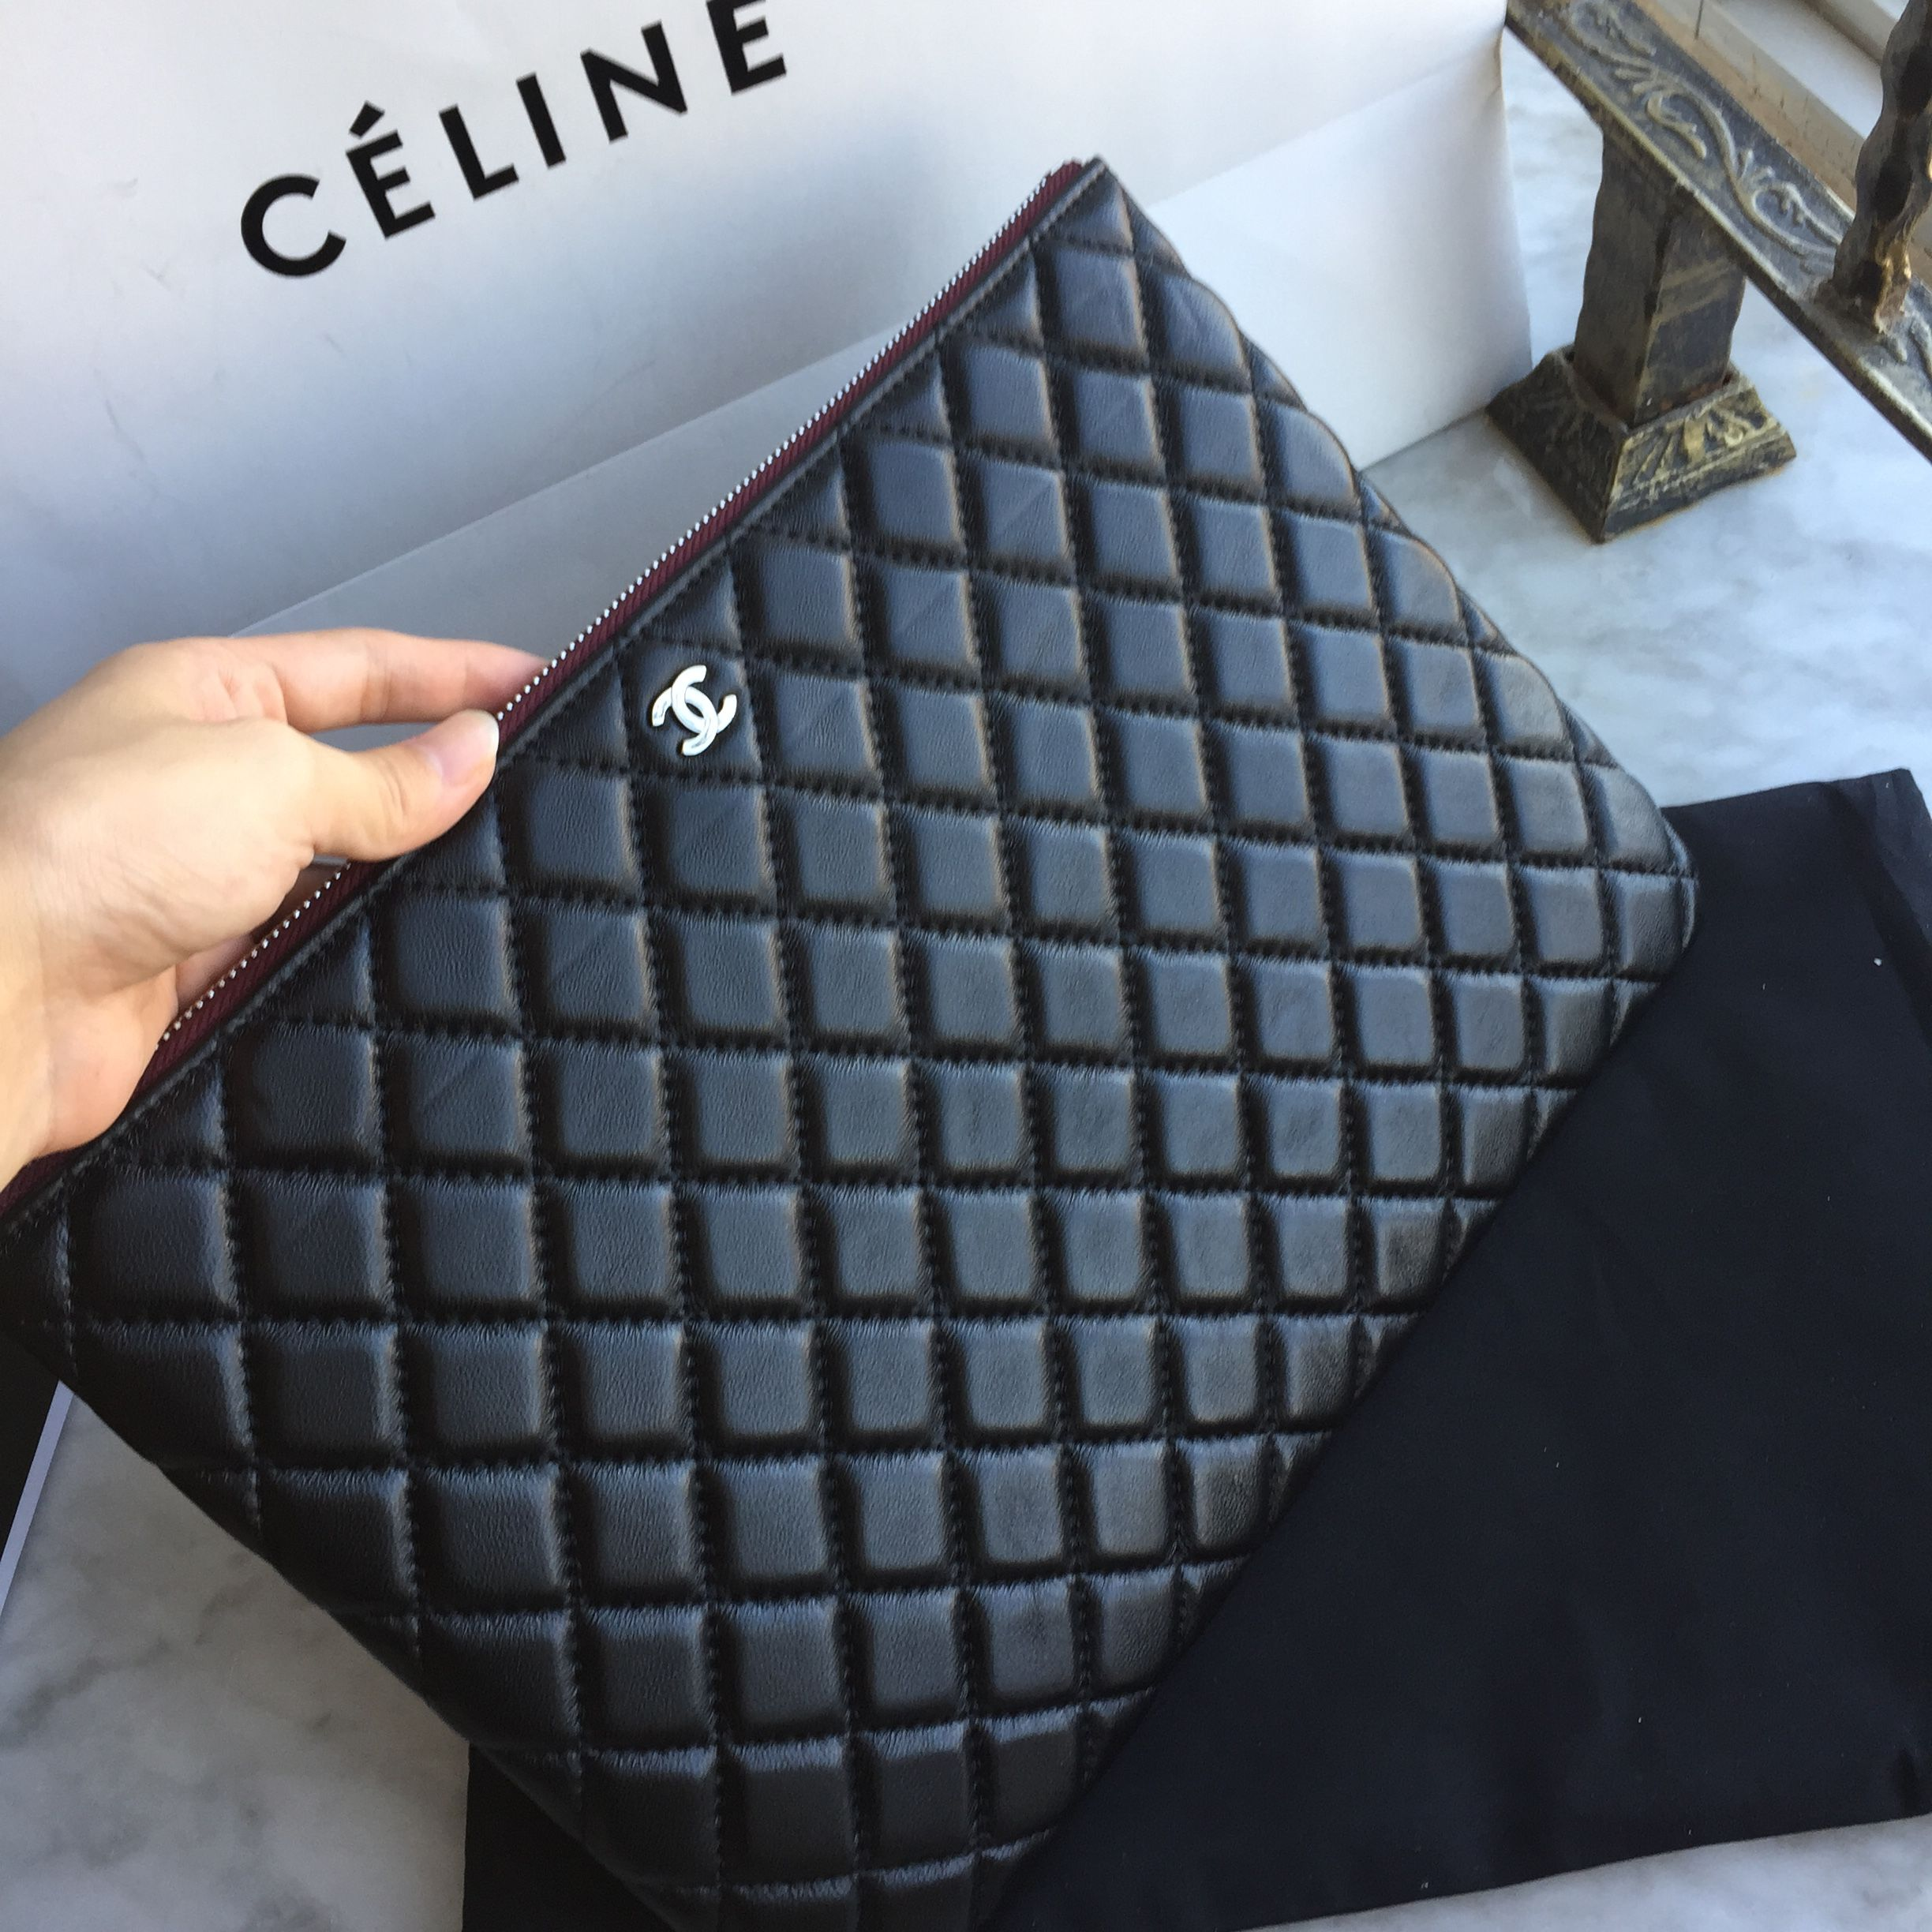 Chanel classic woman clutch purse quilted | Chanel bags ... : chanel quilted clutch bag - Adamdwight.com